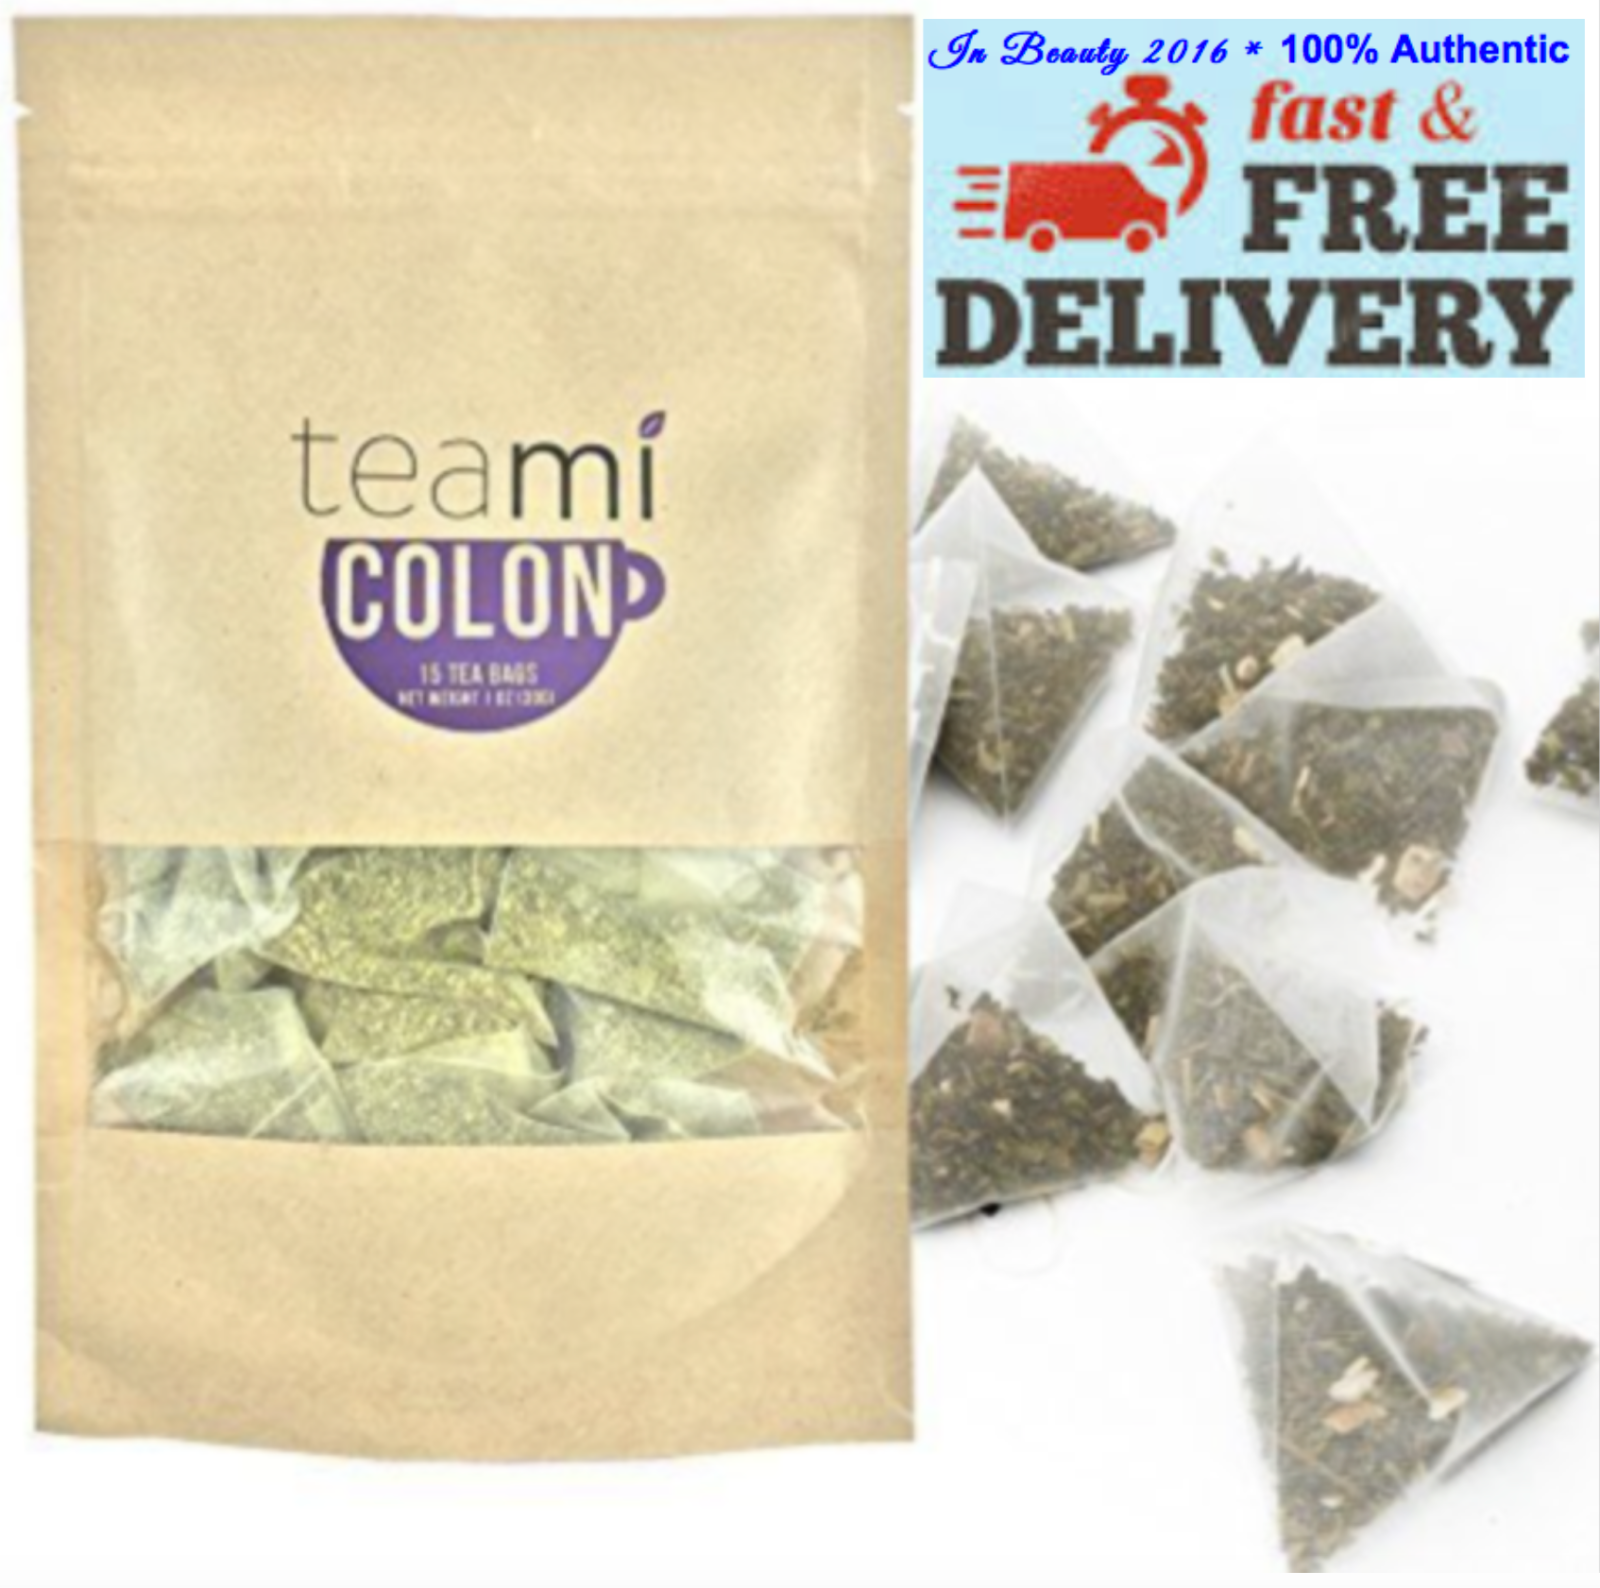 Detox Tea for Teatox Weight Loss to get a Skinny Tummy | Col